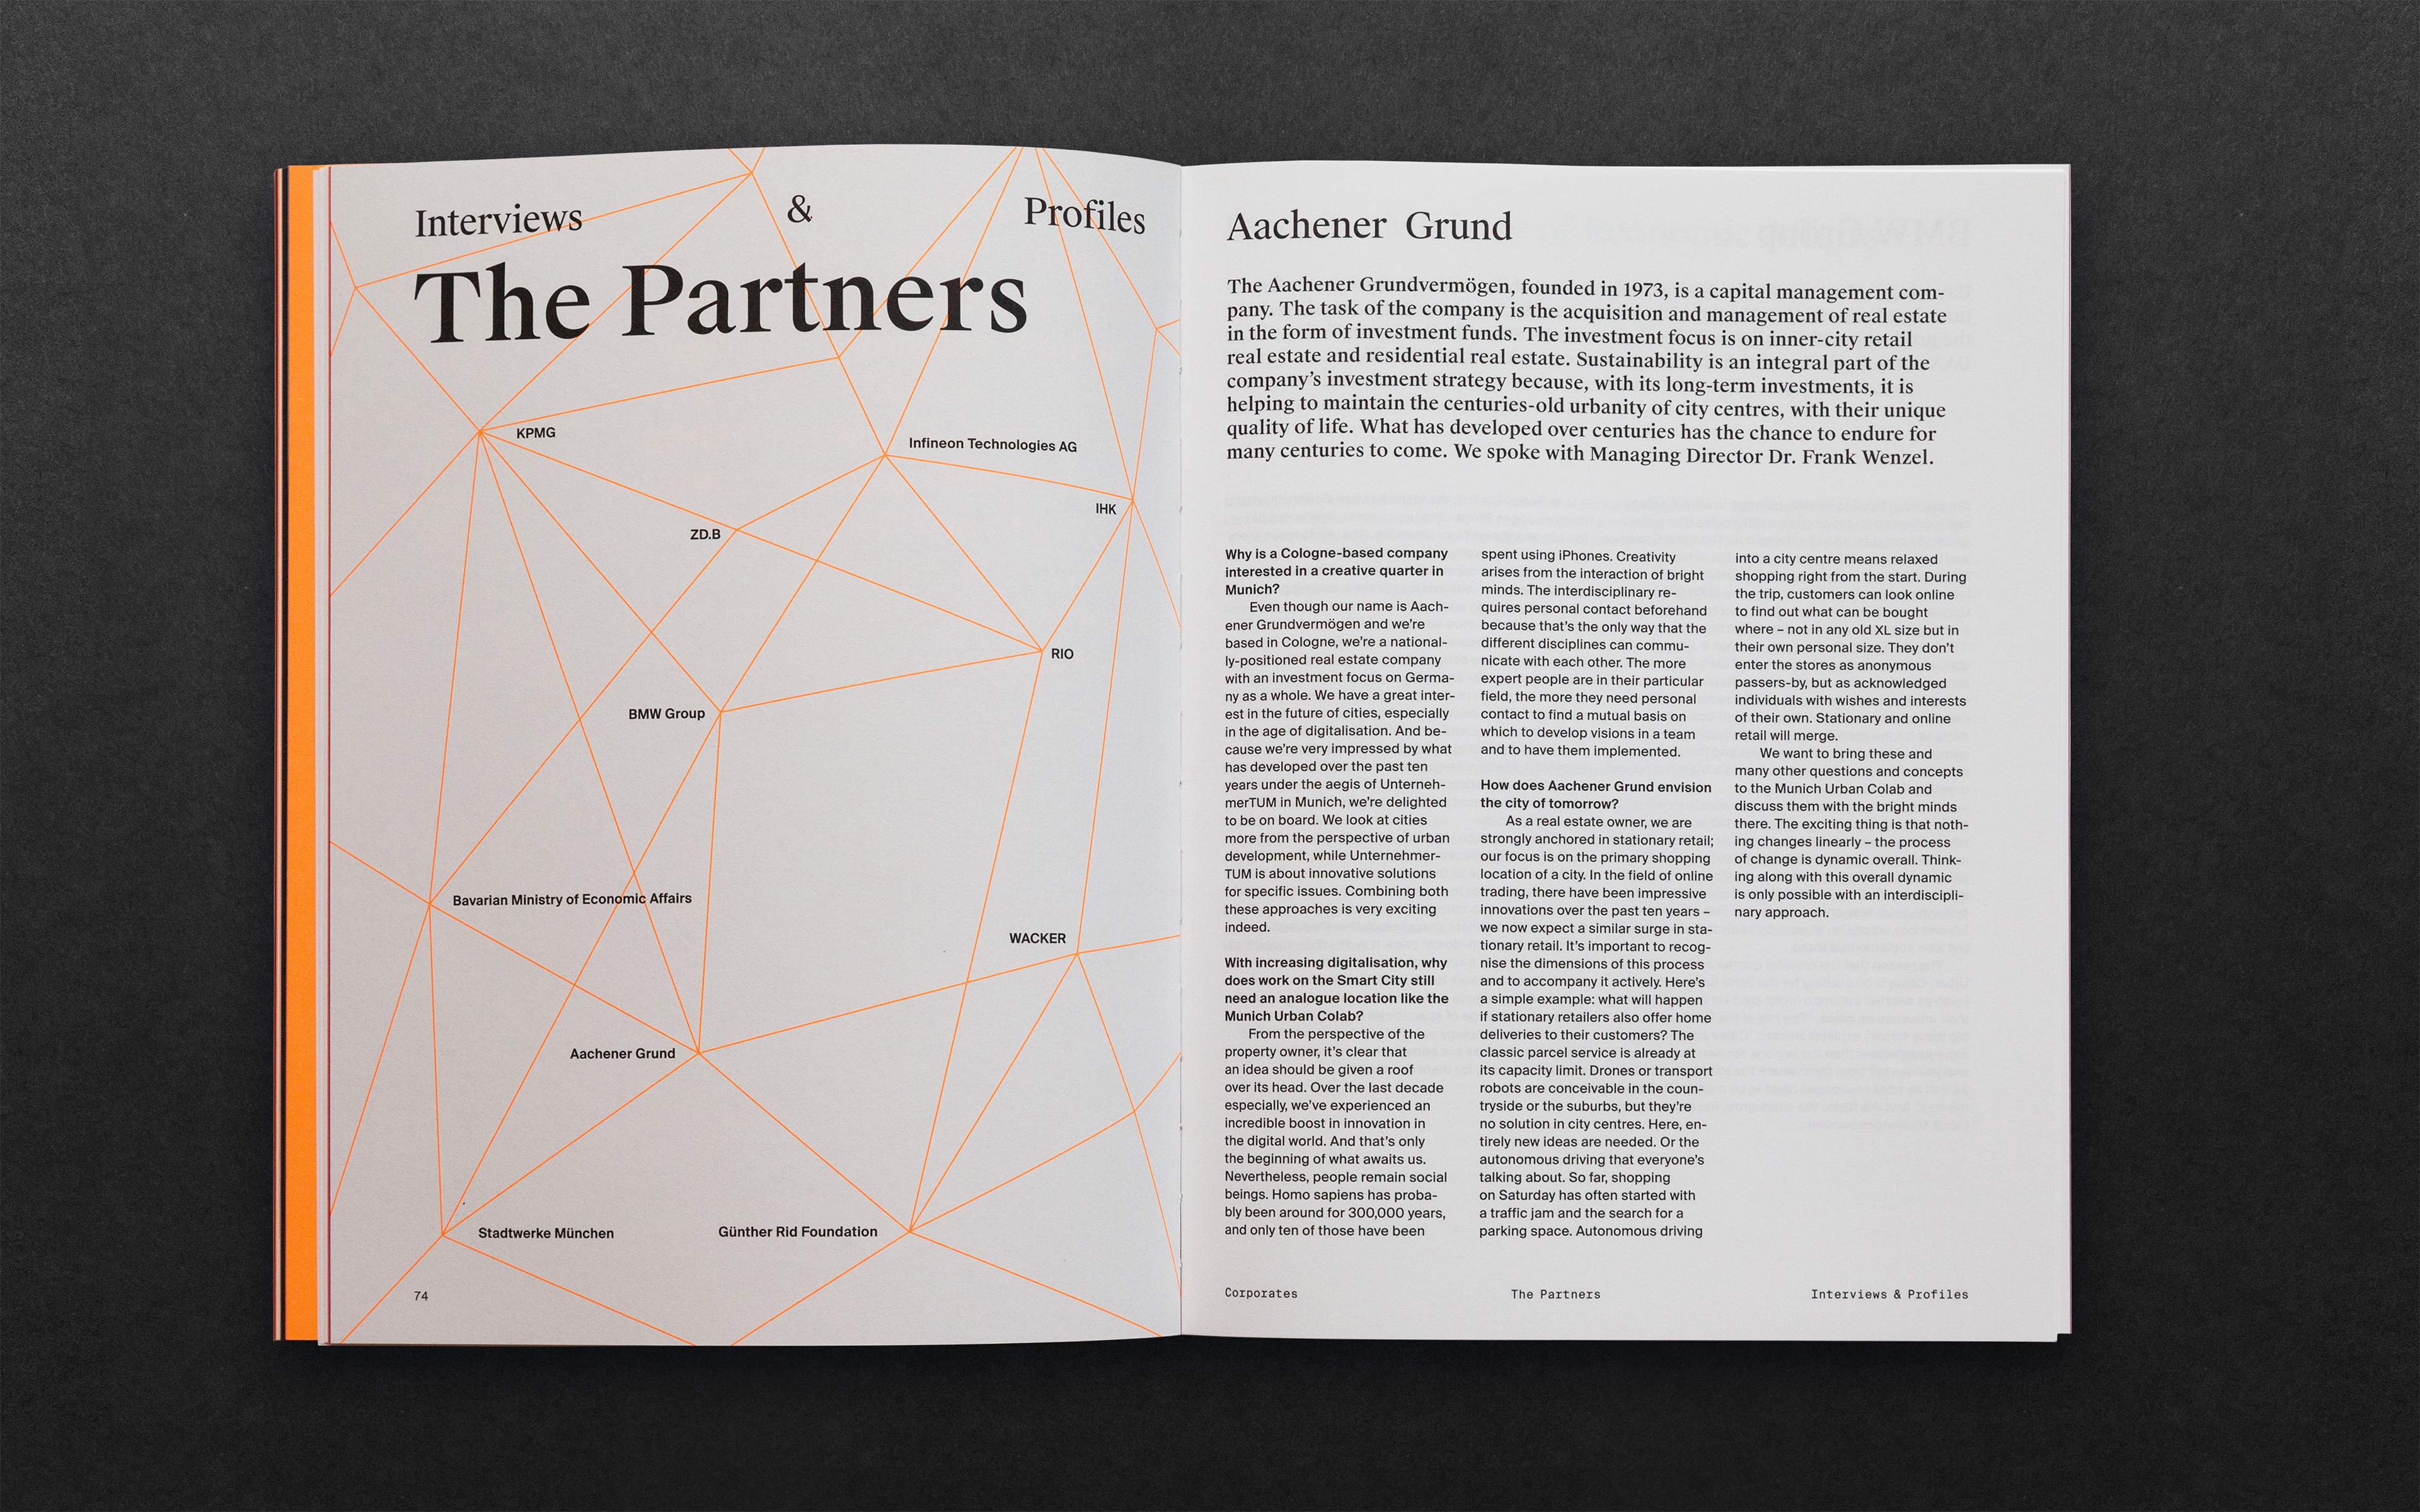 The picture shows an article about the partners of the Munich Urban Colab.